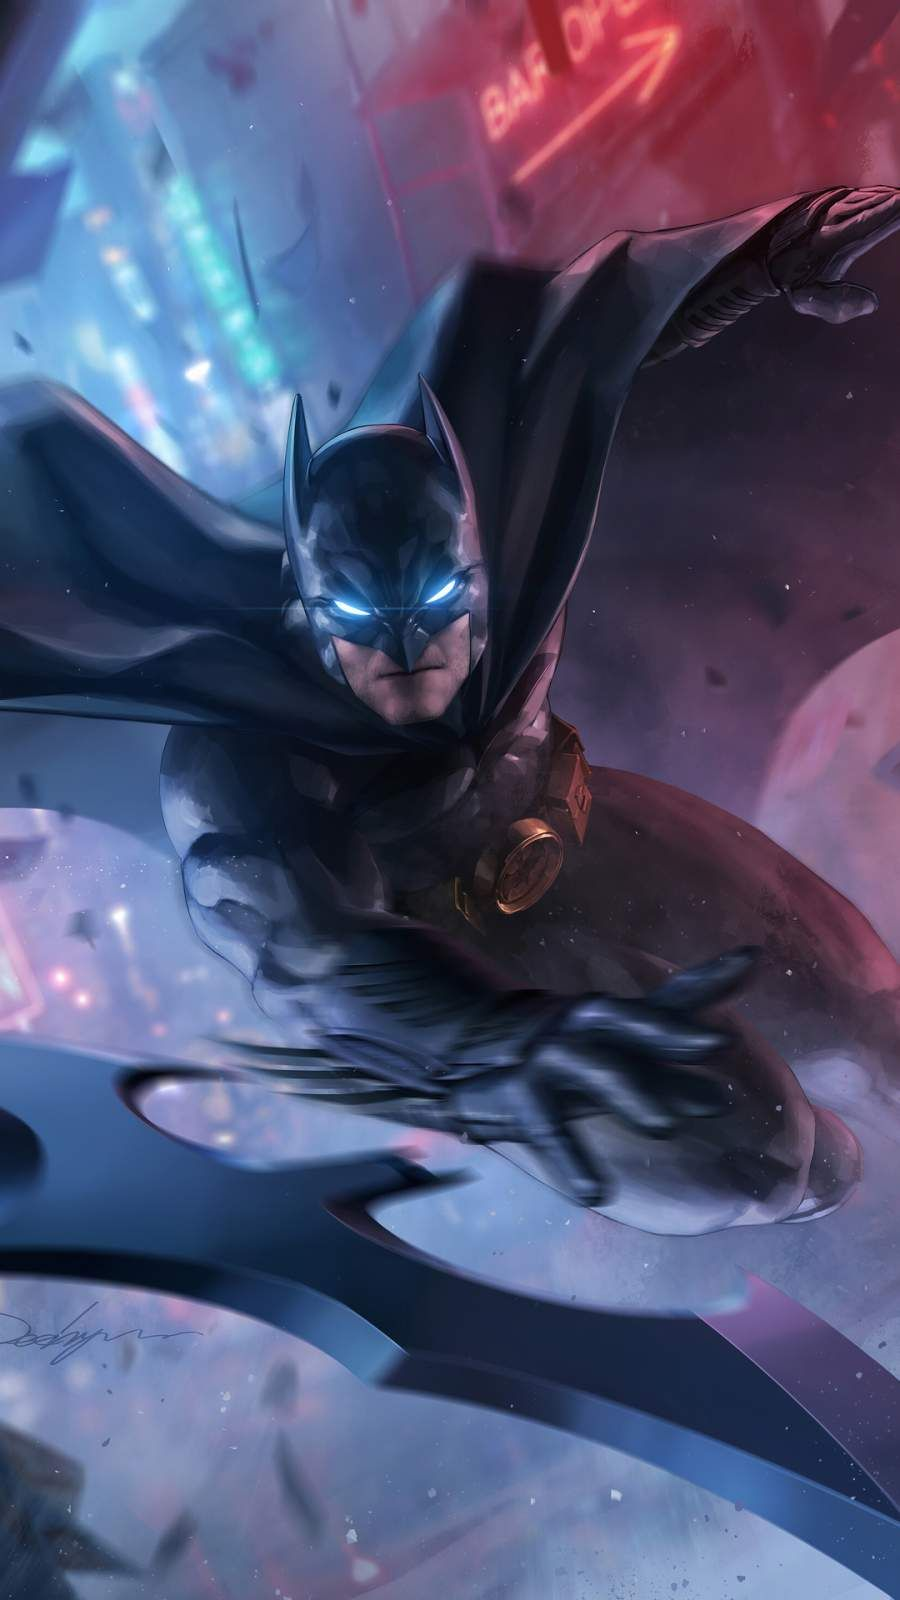 Batman Attack Iphone Wallpaper Batman Comic Art Batman Artwork